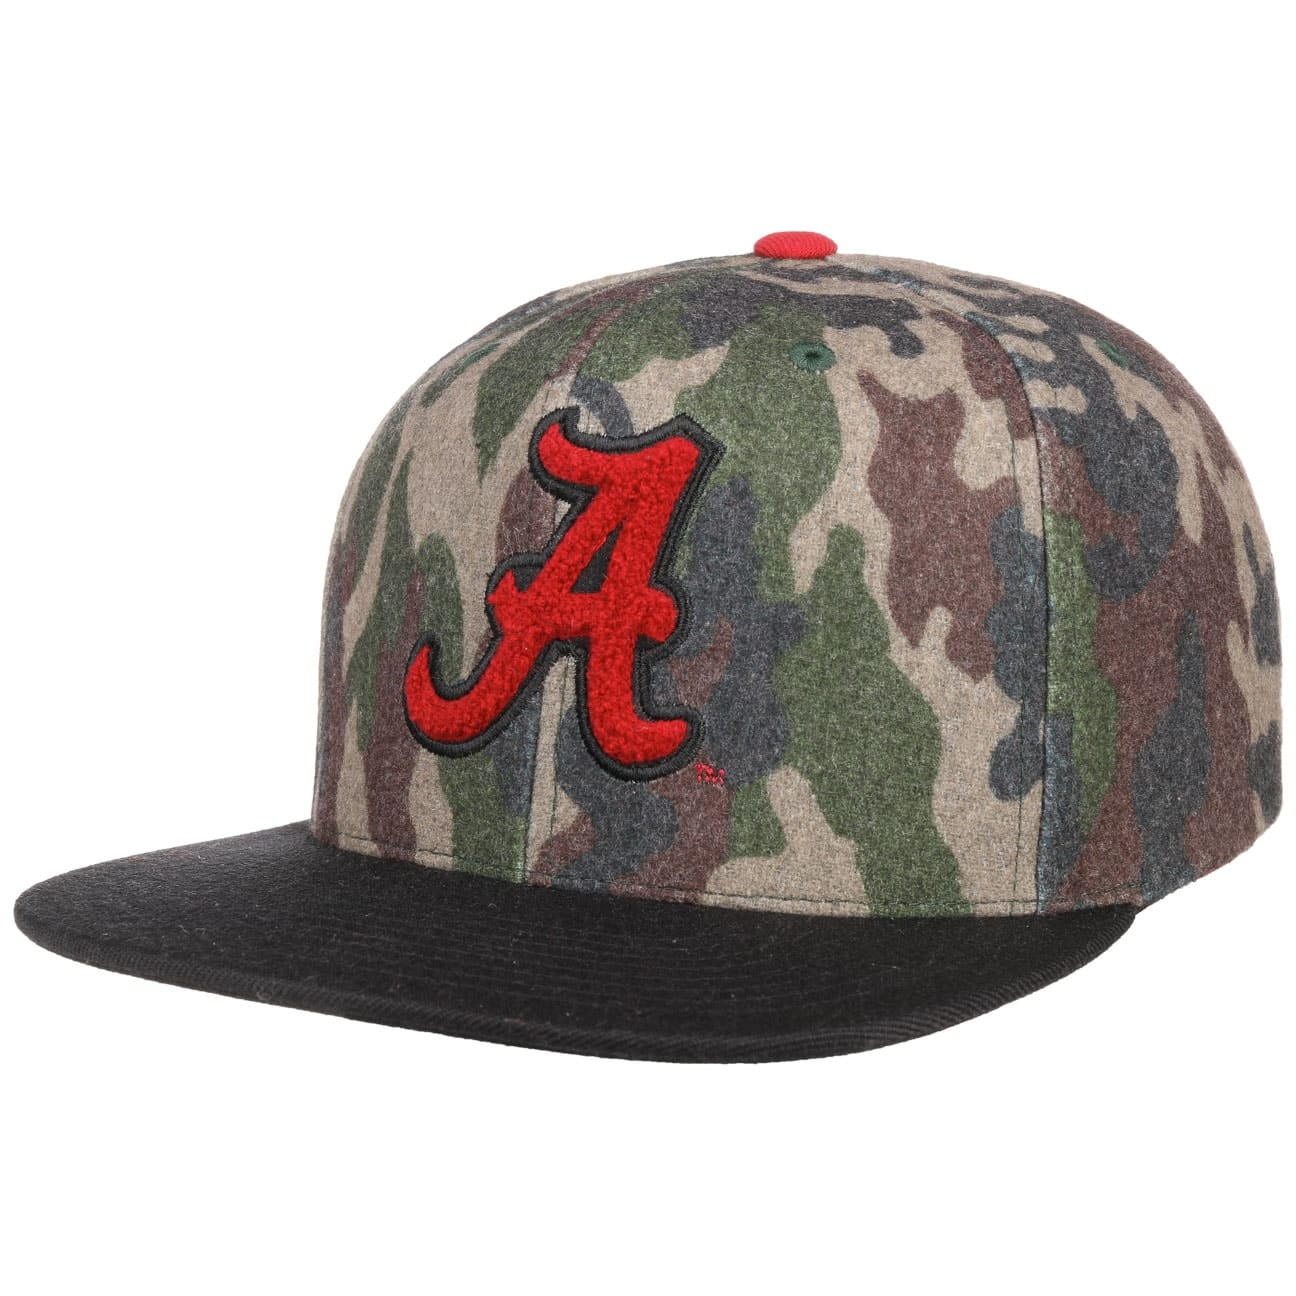 ncaa-camo-flannel-alabama-cap-by-mitchell-ness-flat-brim-cap